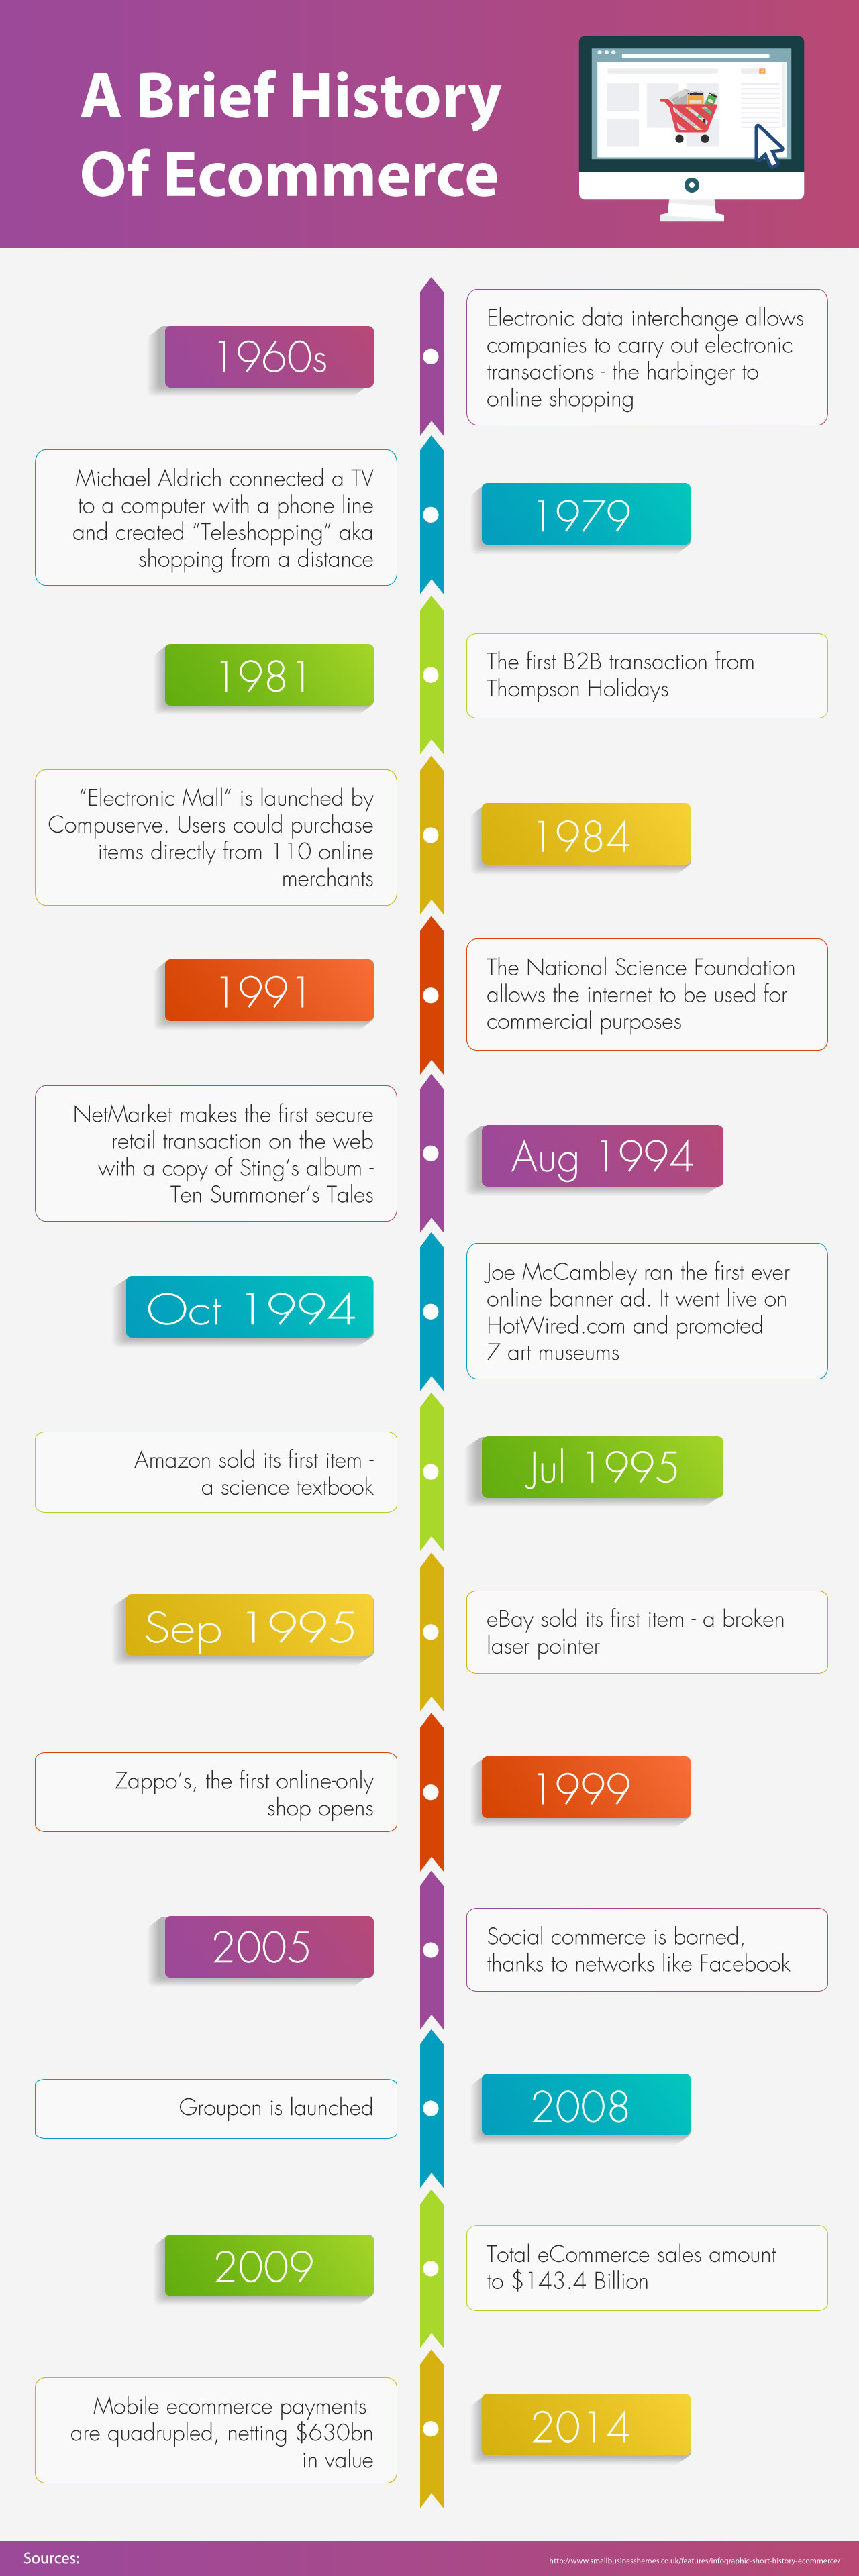 a-brief-history-of-ecommerce